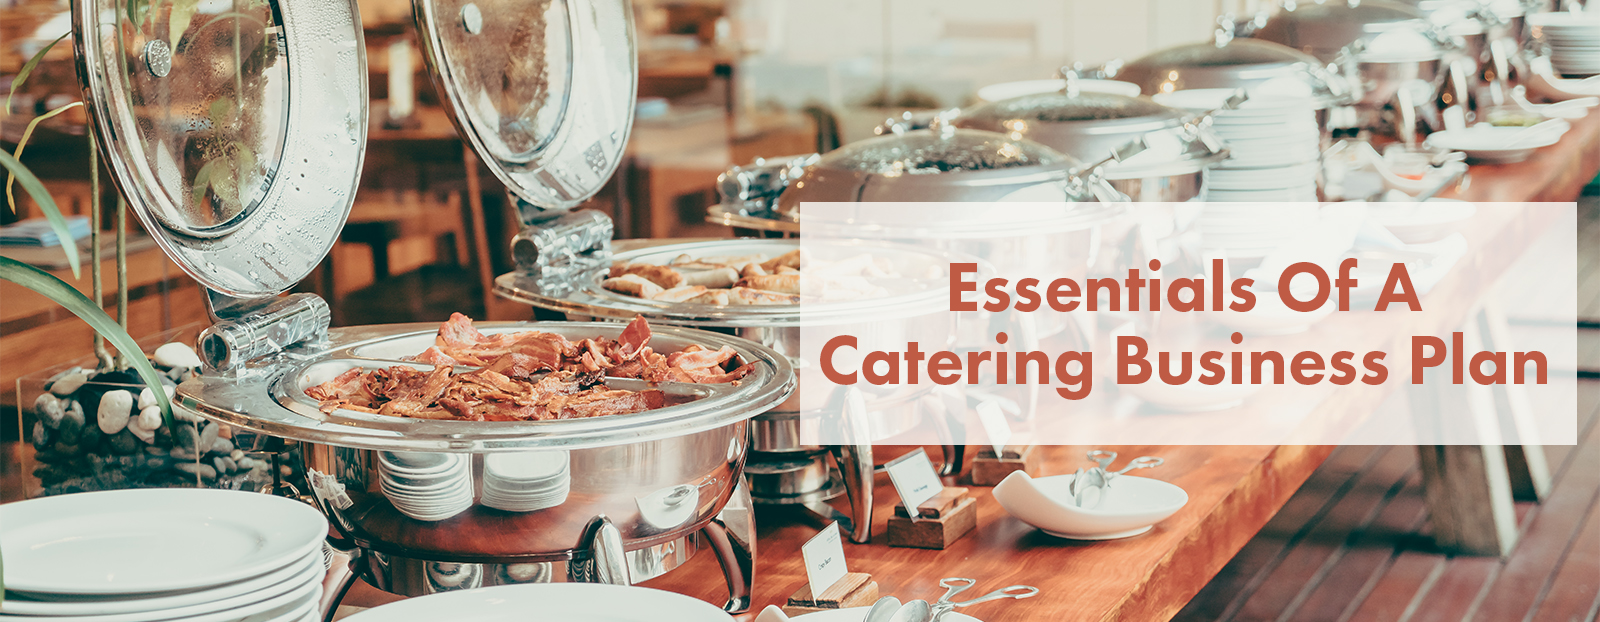 Essentials Of A Catering Business Plan